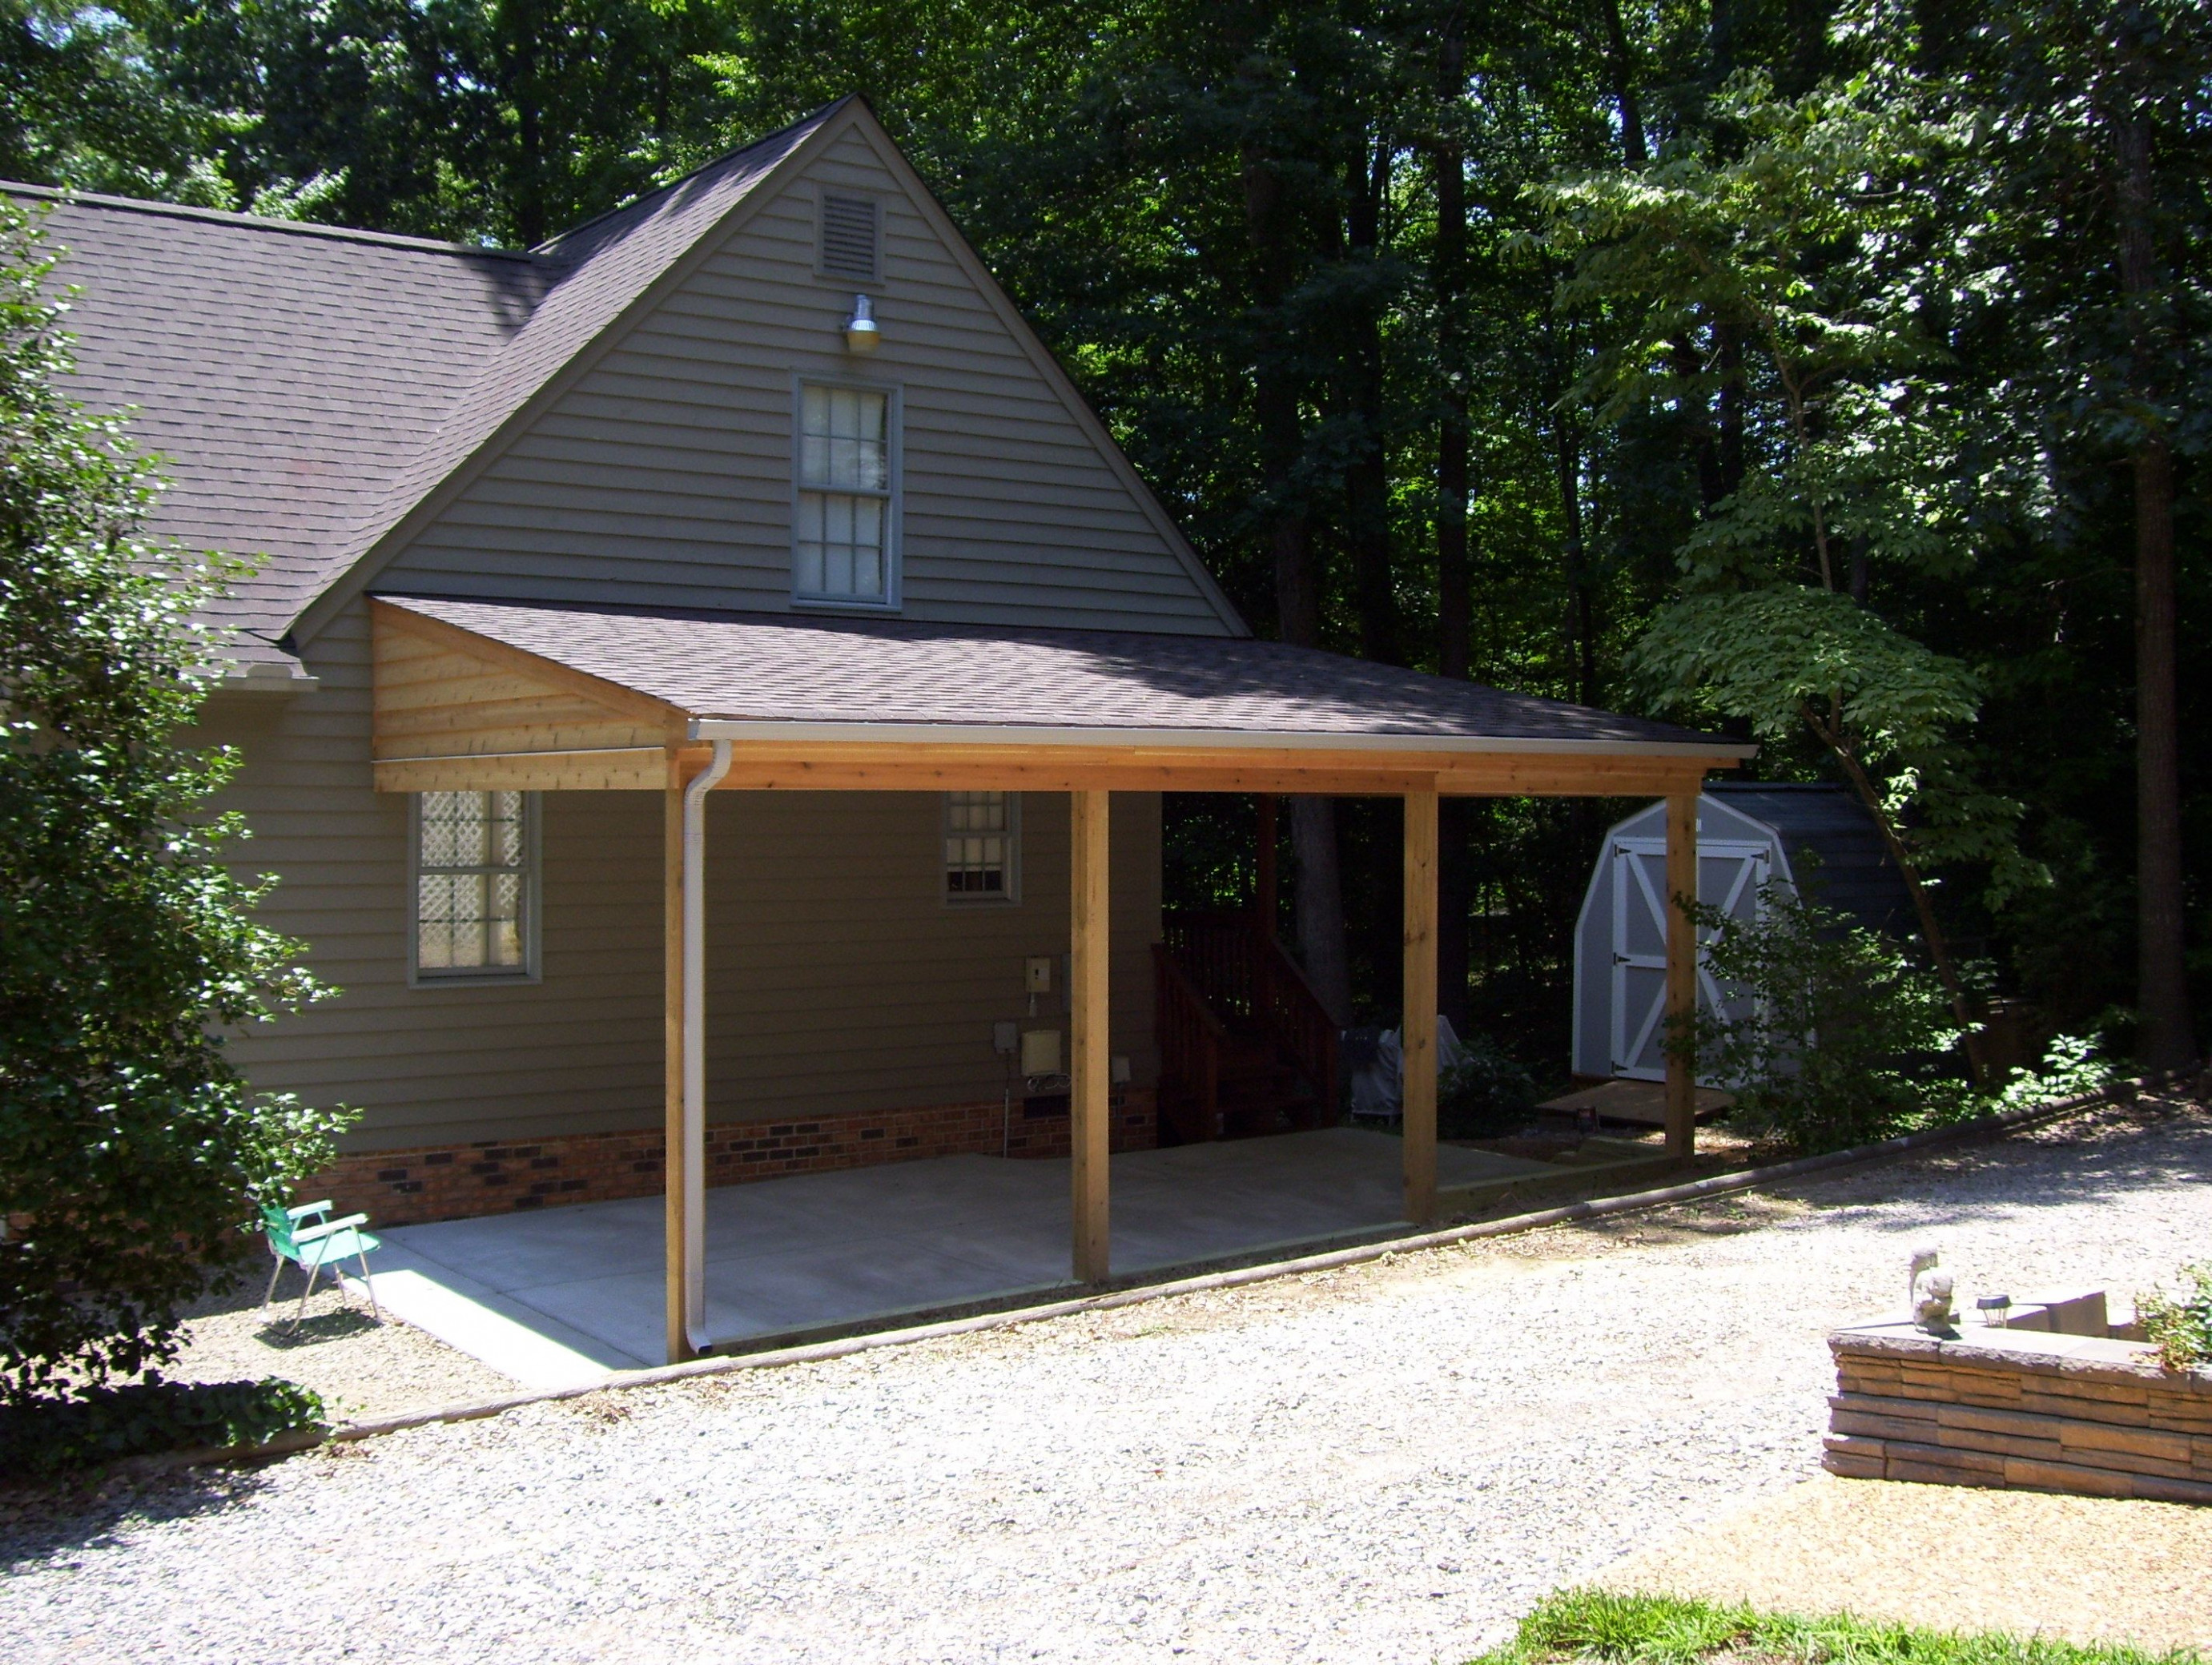 Attached Carport Photos | House Remodel In 11 | Carport ..